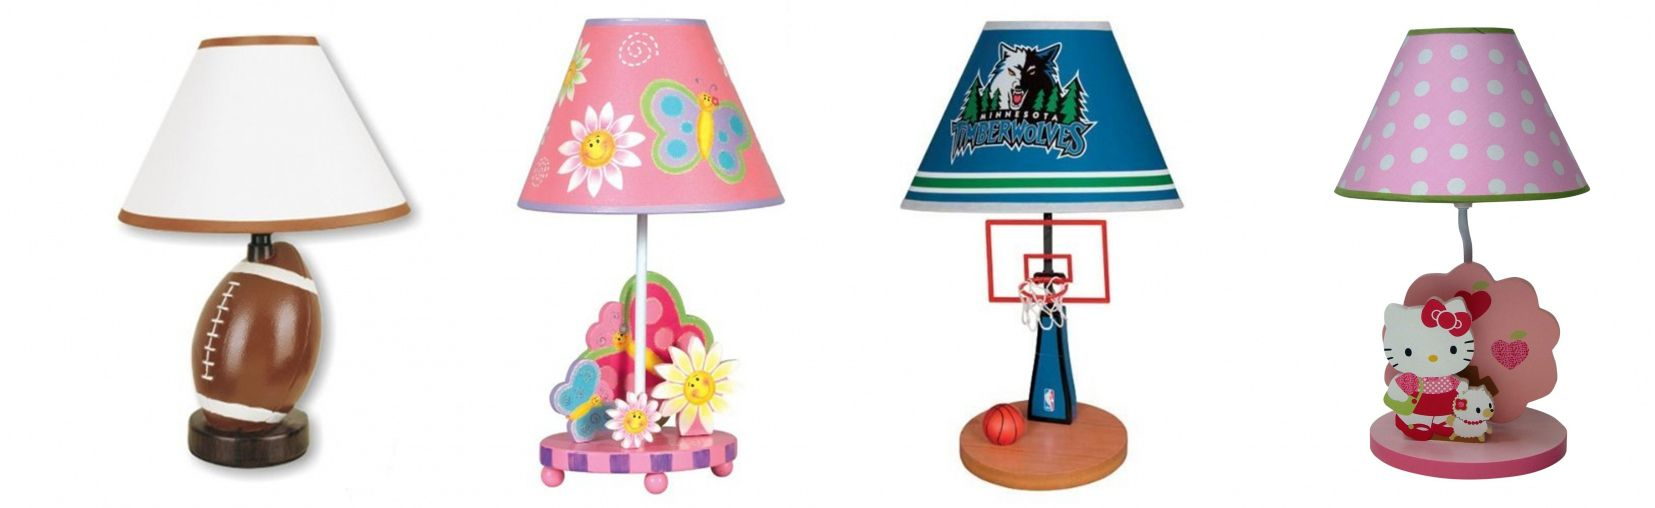 9  Floor Lamps for Kids Rooms - Ideas to Divide A Bedroom Check ...